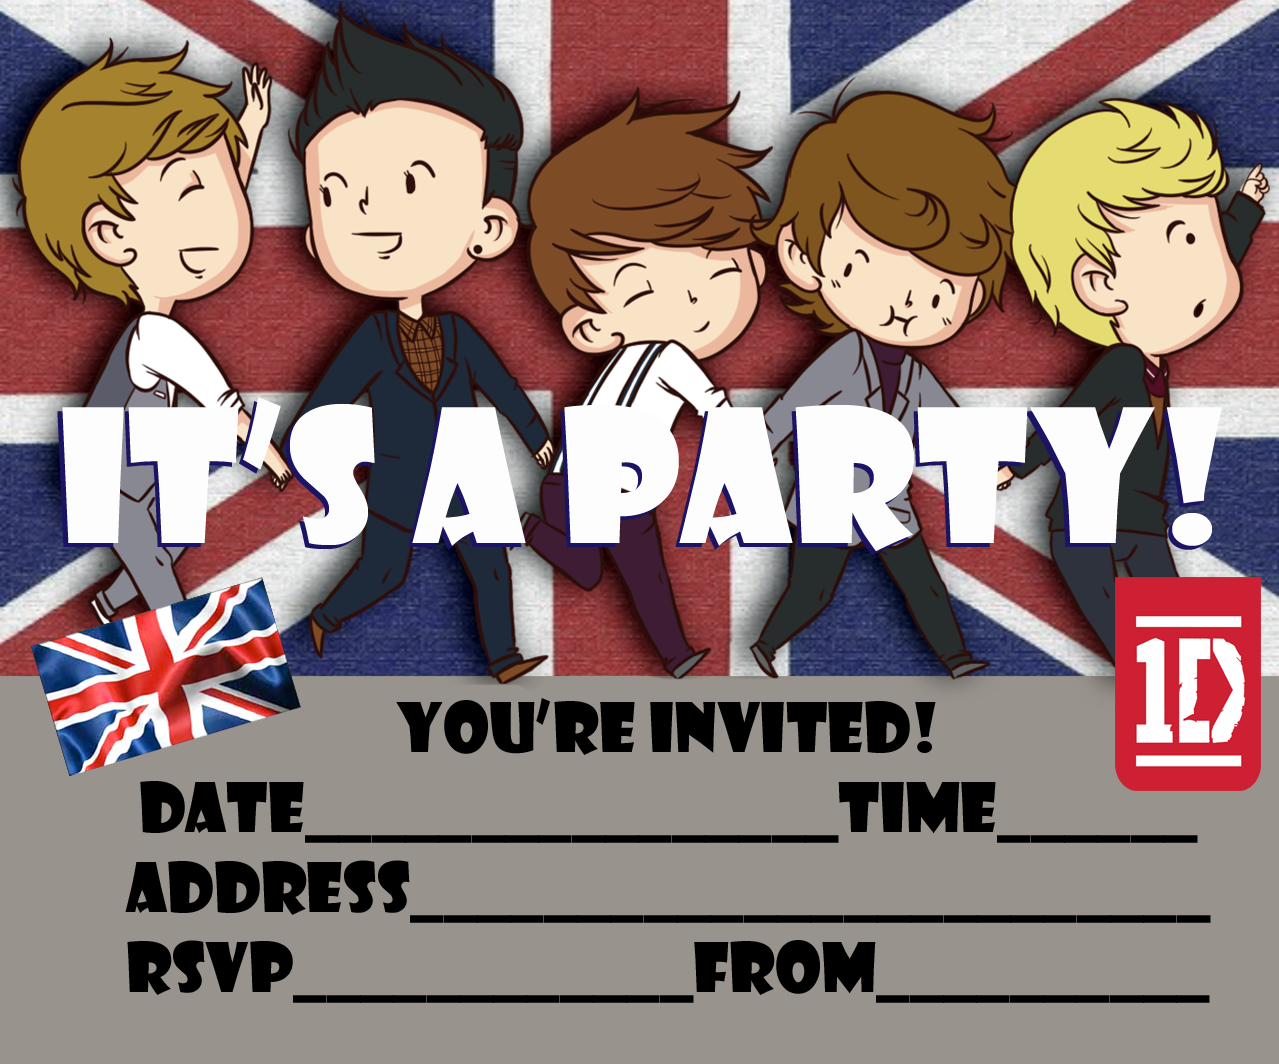 one direction free printable party invitation for 1d fans to print, Printable invitations